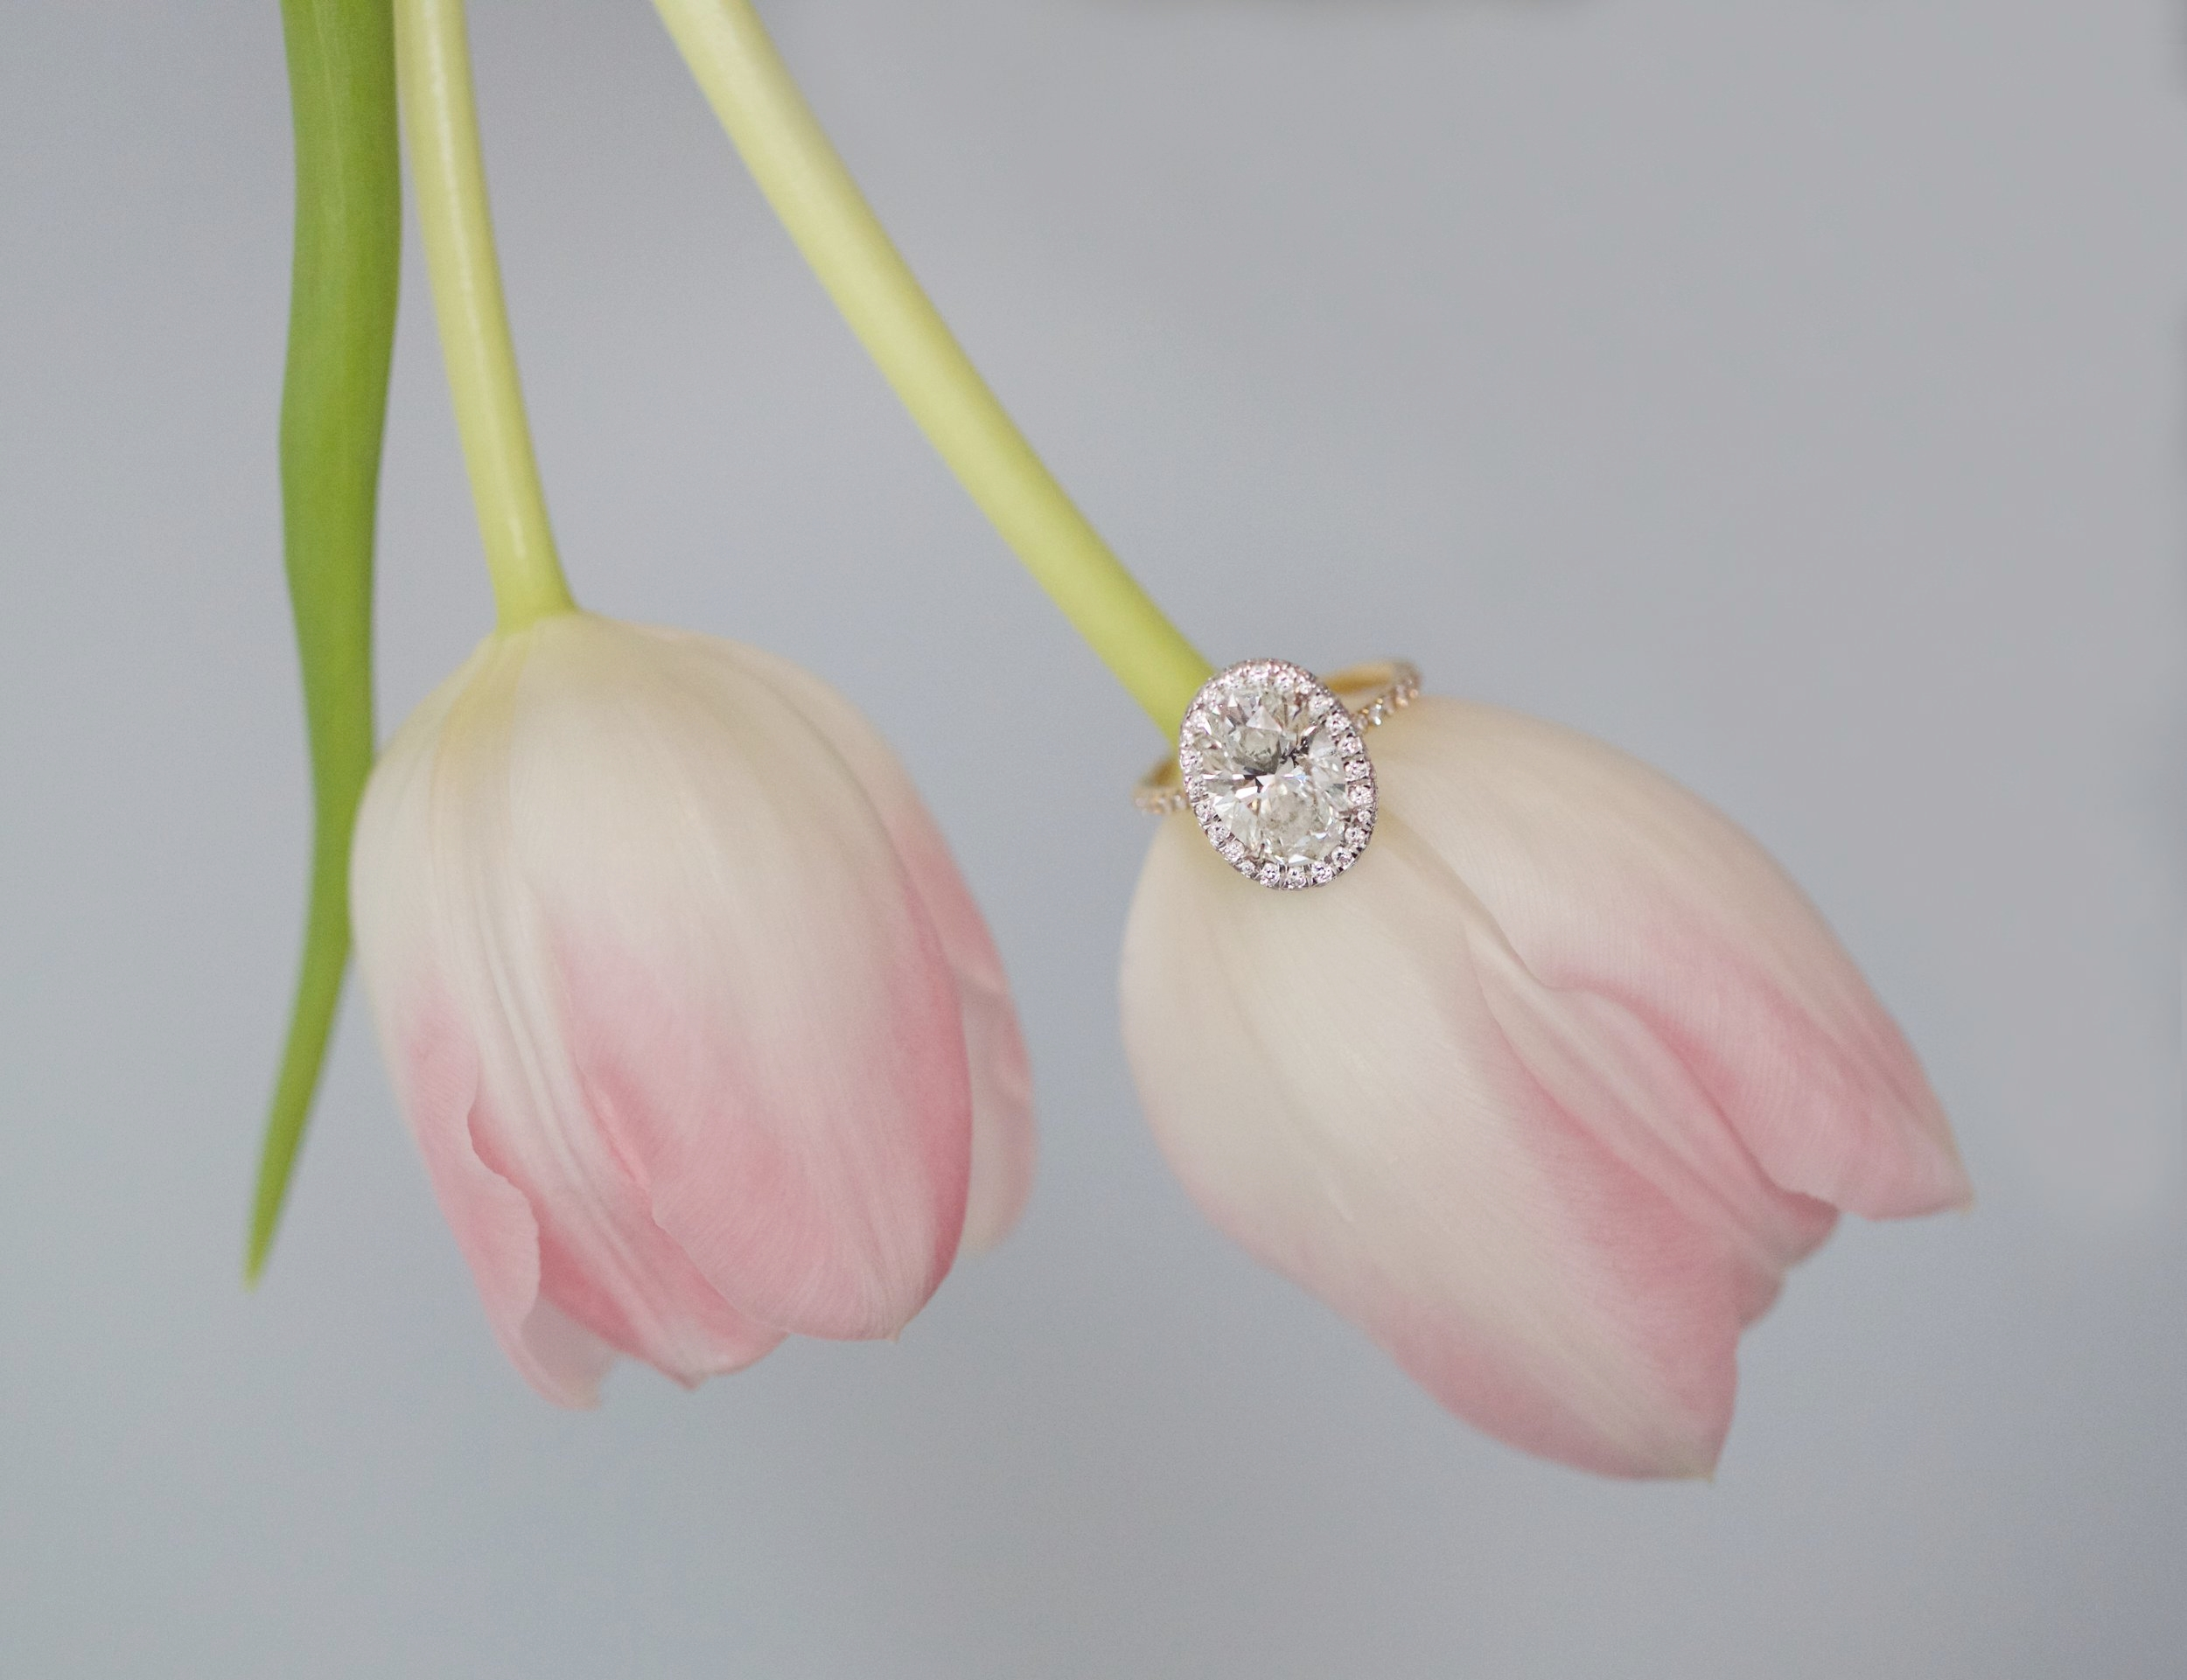 tulip ring 2 - Version 2.jpg